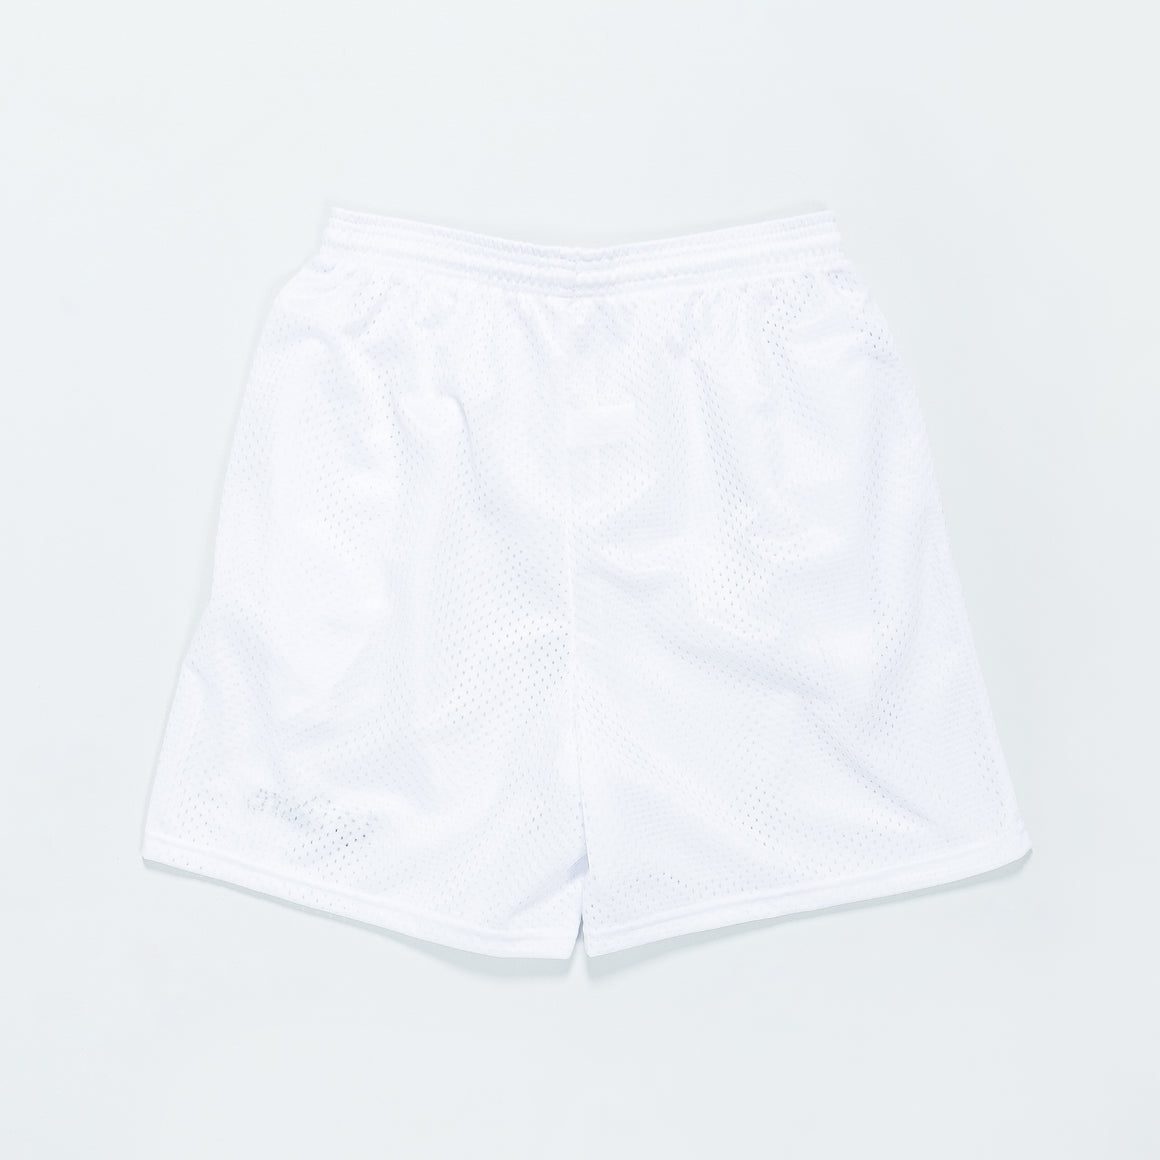 Up There - Baller Shorts - White - Up There